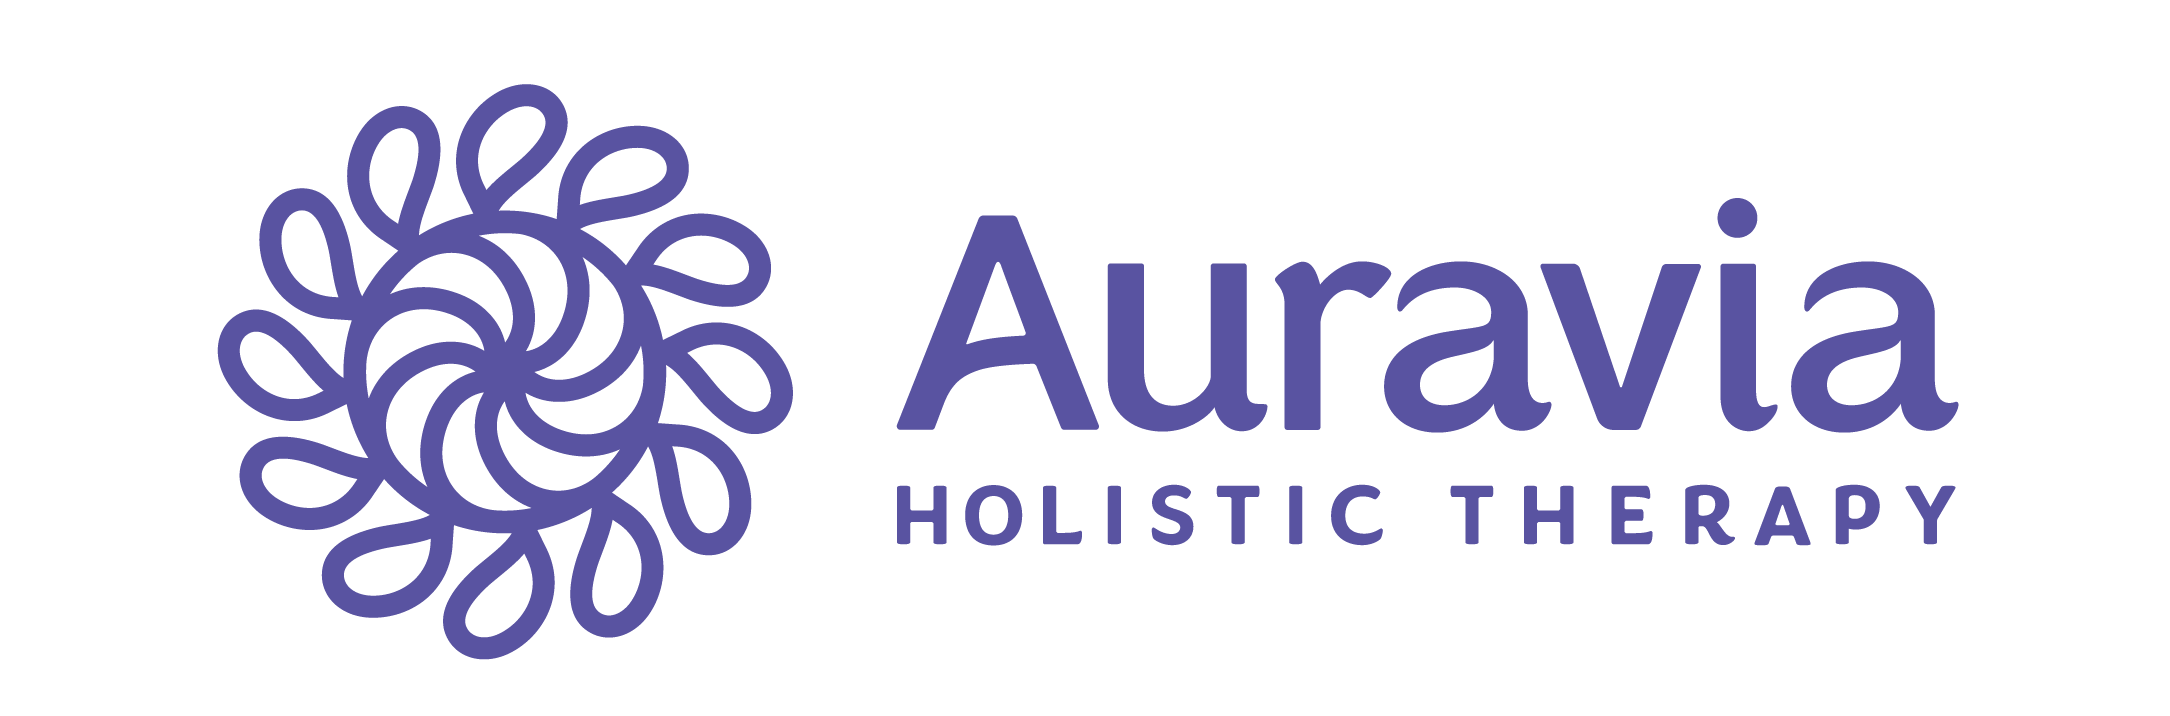 Auravia Holistic Therapy